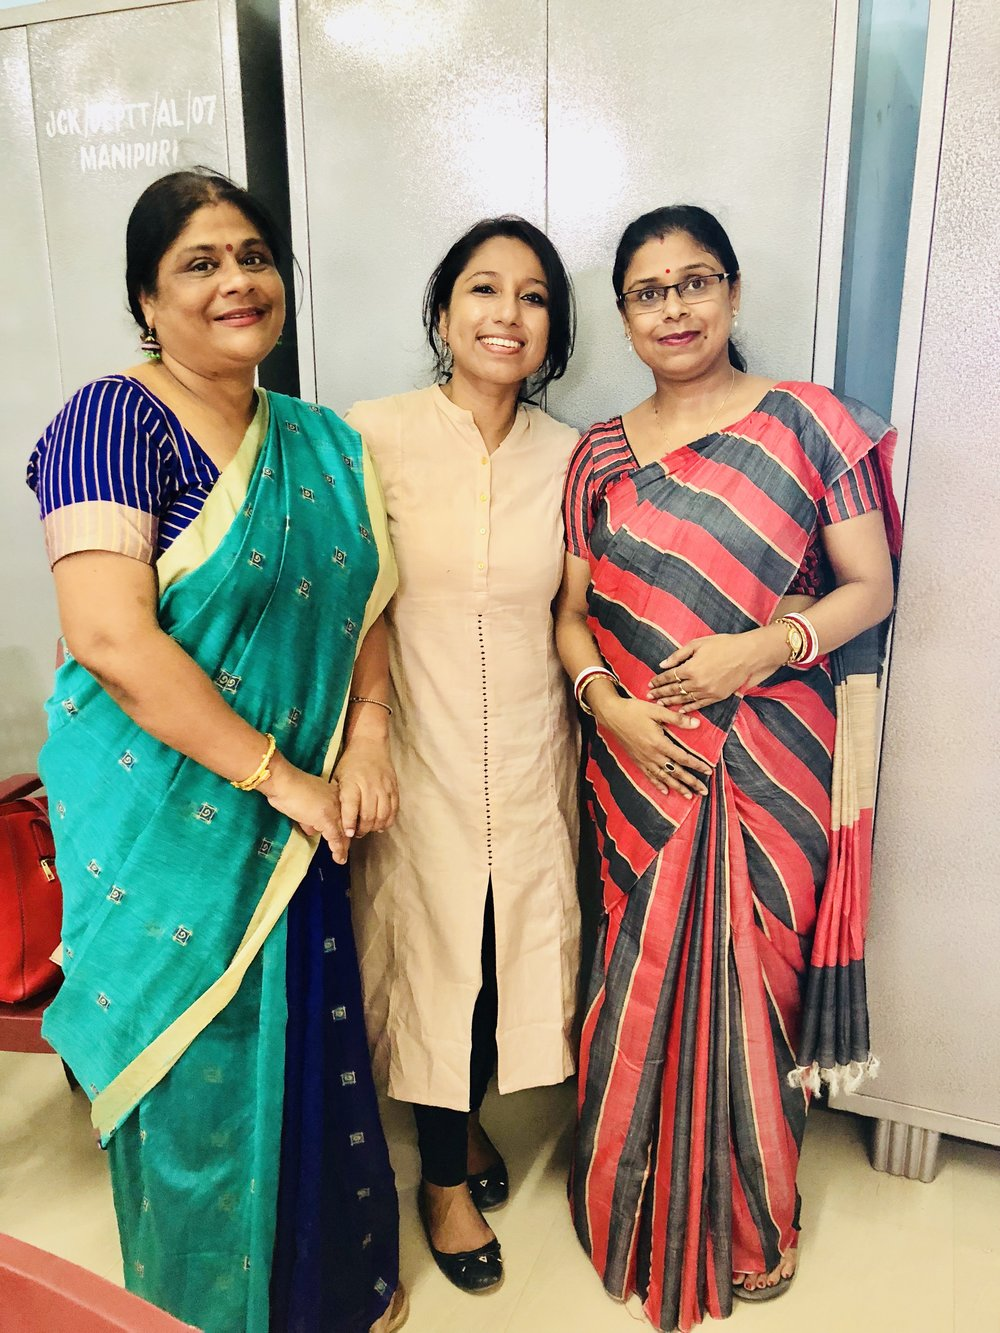 I am so thankful to Dr. Sima Ghosh, Associate Prof. & Head, Bengali Dept. and Mrs. Soma Bhattacharjee, Assistant Prof. & Head, Philosophy Dept., for giving me the long distance ride to the College & I thoroughly enjoyed the conversation on our way back & forth. Will cherish the moments together!